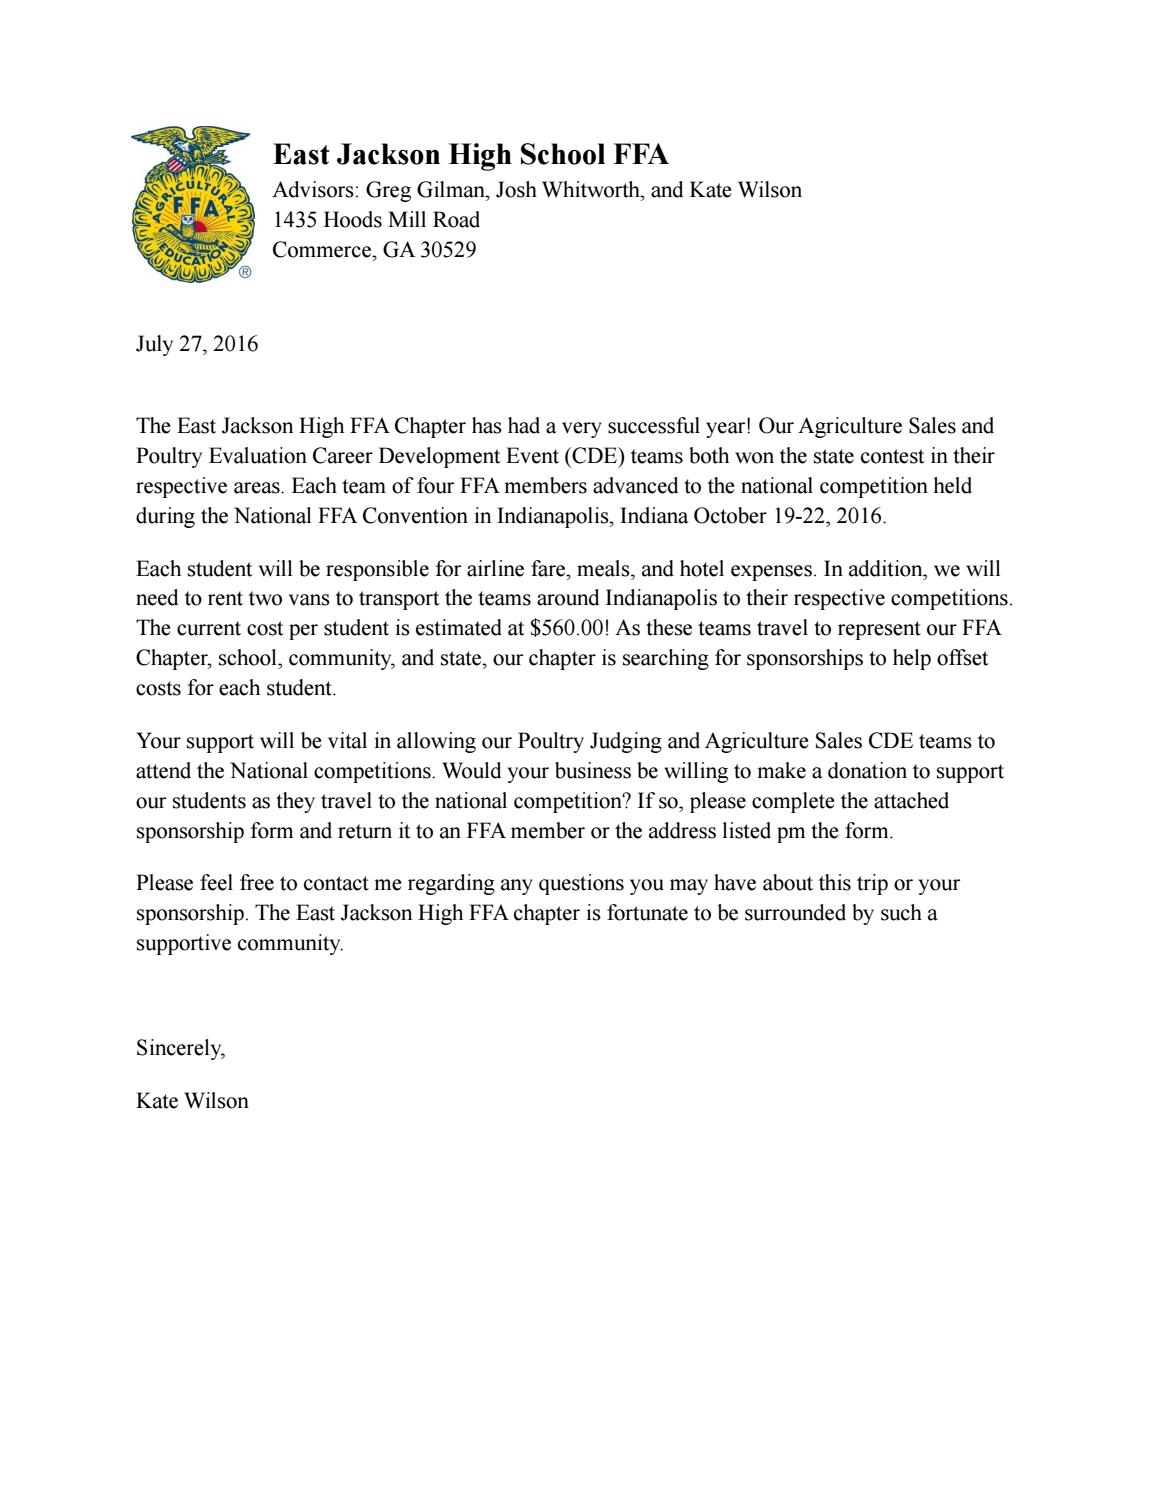 National FFA Convention Sponsorship Letter by East Jackson